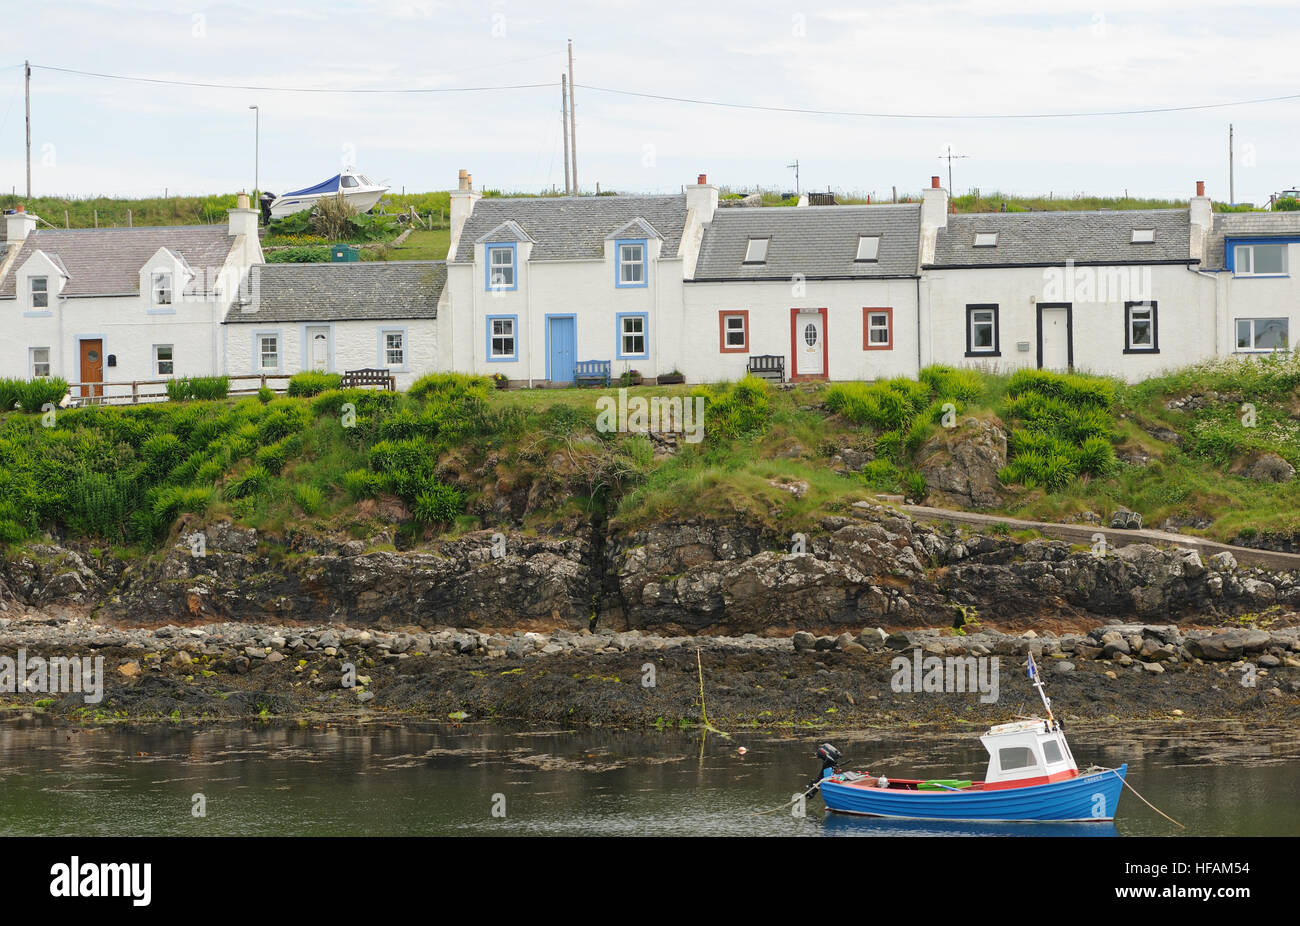 A row of painted cottages on the edge of the sheltered harbour at Portnahaven. Portnahaven, Islay, Inner Hebrides, - Stock Image